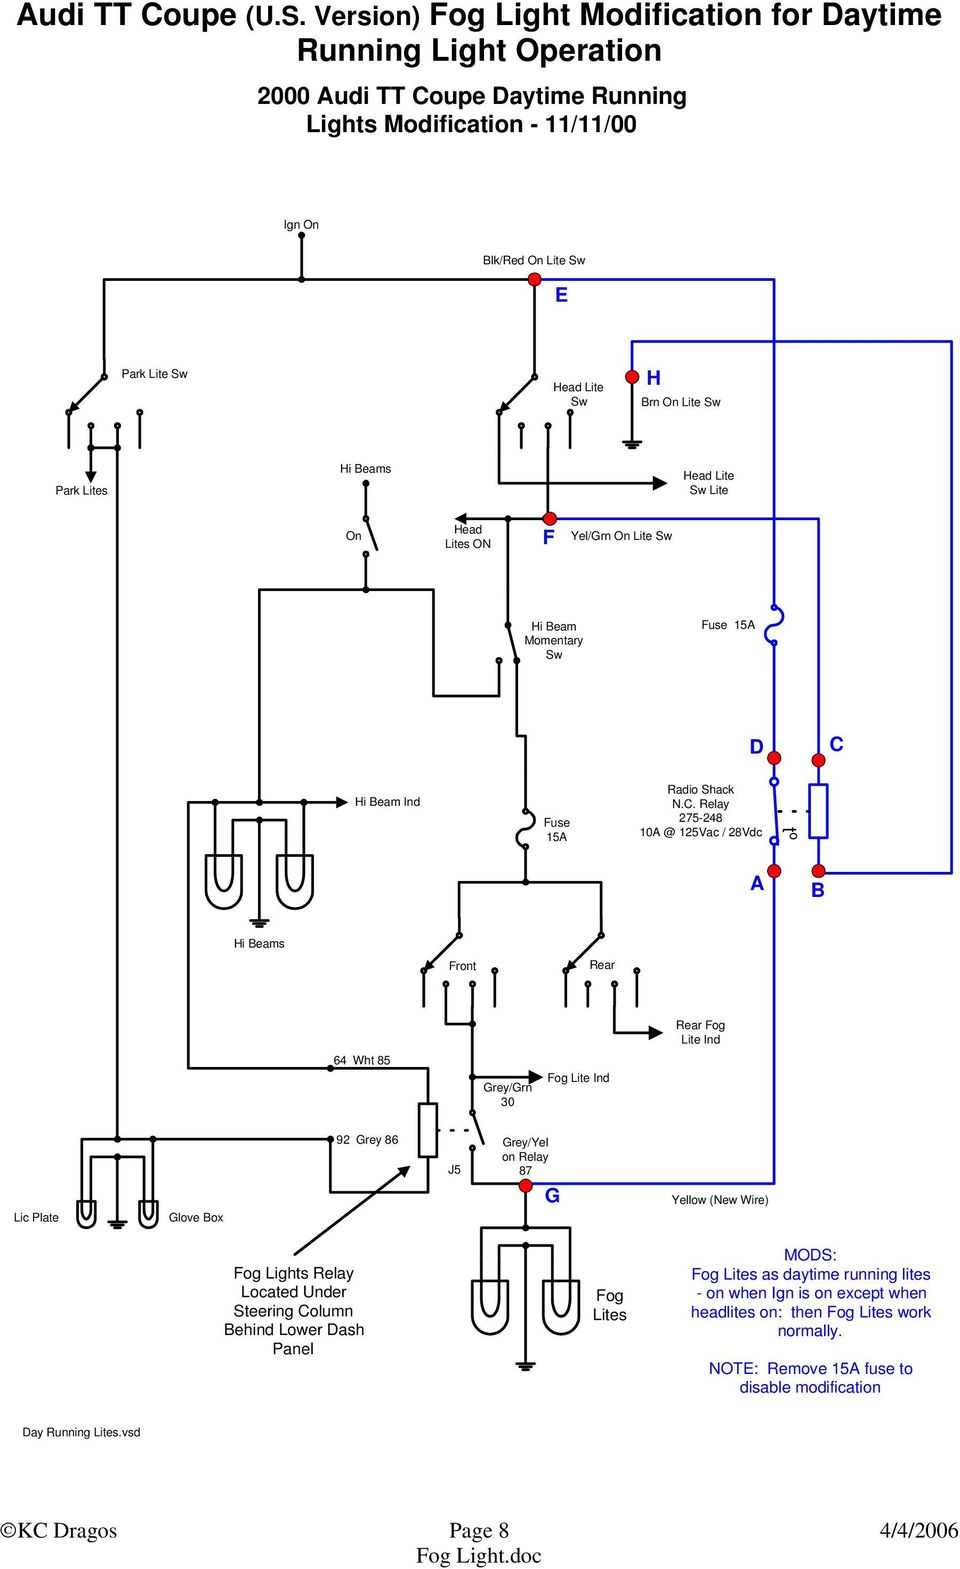 Oil Sensor Wiring Schematic   Wiring Grizzly Wiring Diagram Home Improvement Stores Springfield Mo further Wiringdiagram moreover Page furthermore Whelenedgewiringdiagram likewise Maxresdefault. on kc lights wiring diagram